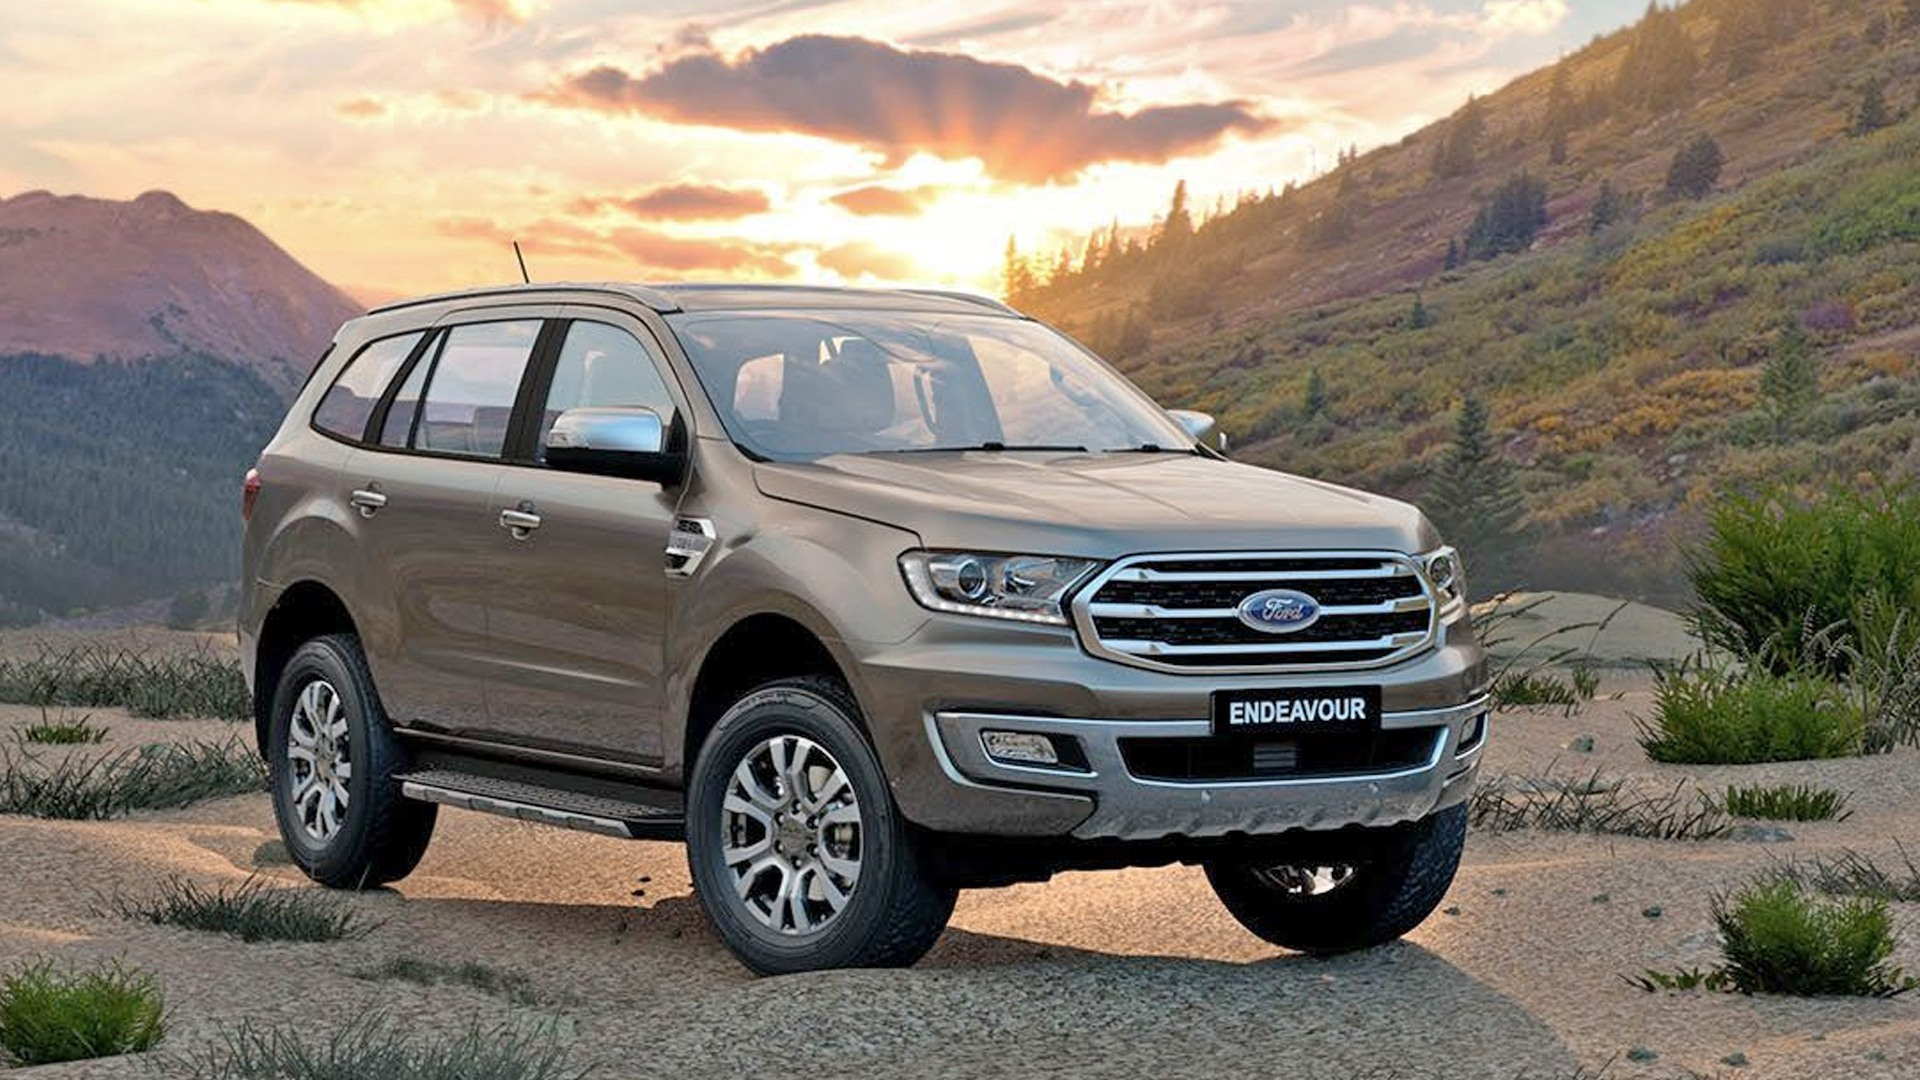 Ford Endeavour To Get 2.3 L Petrol Engine